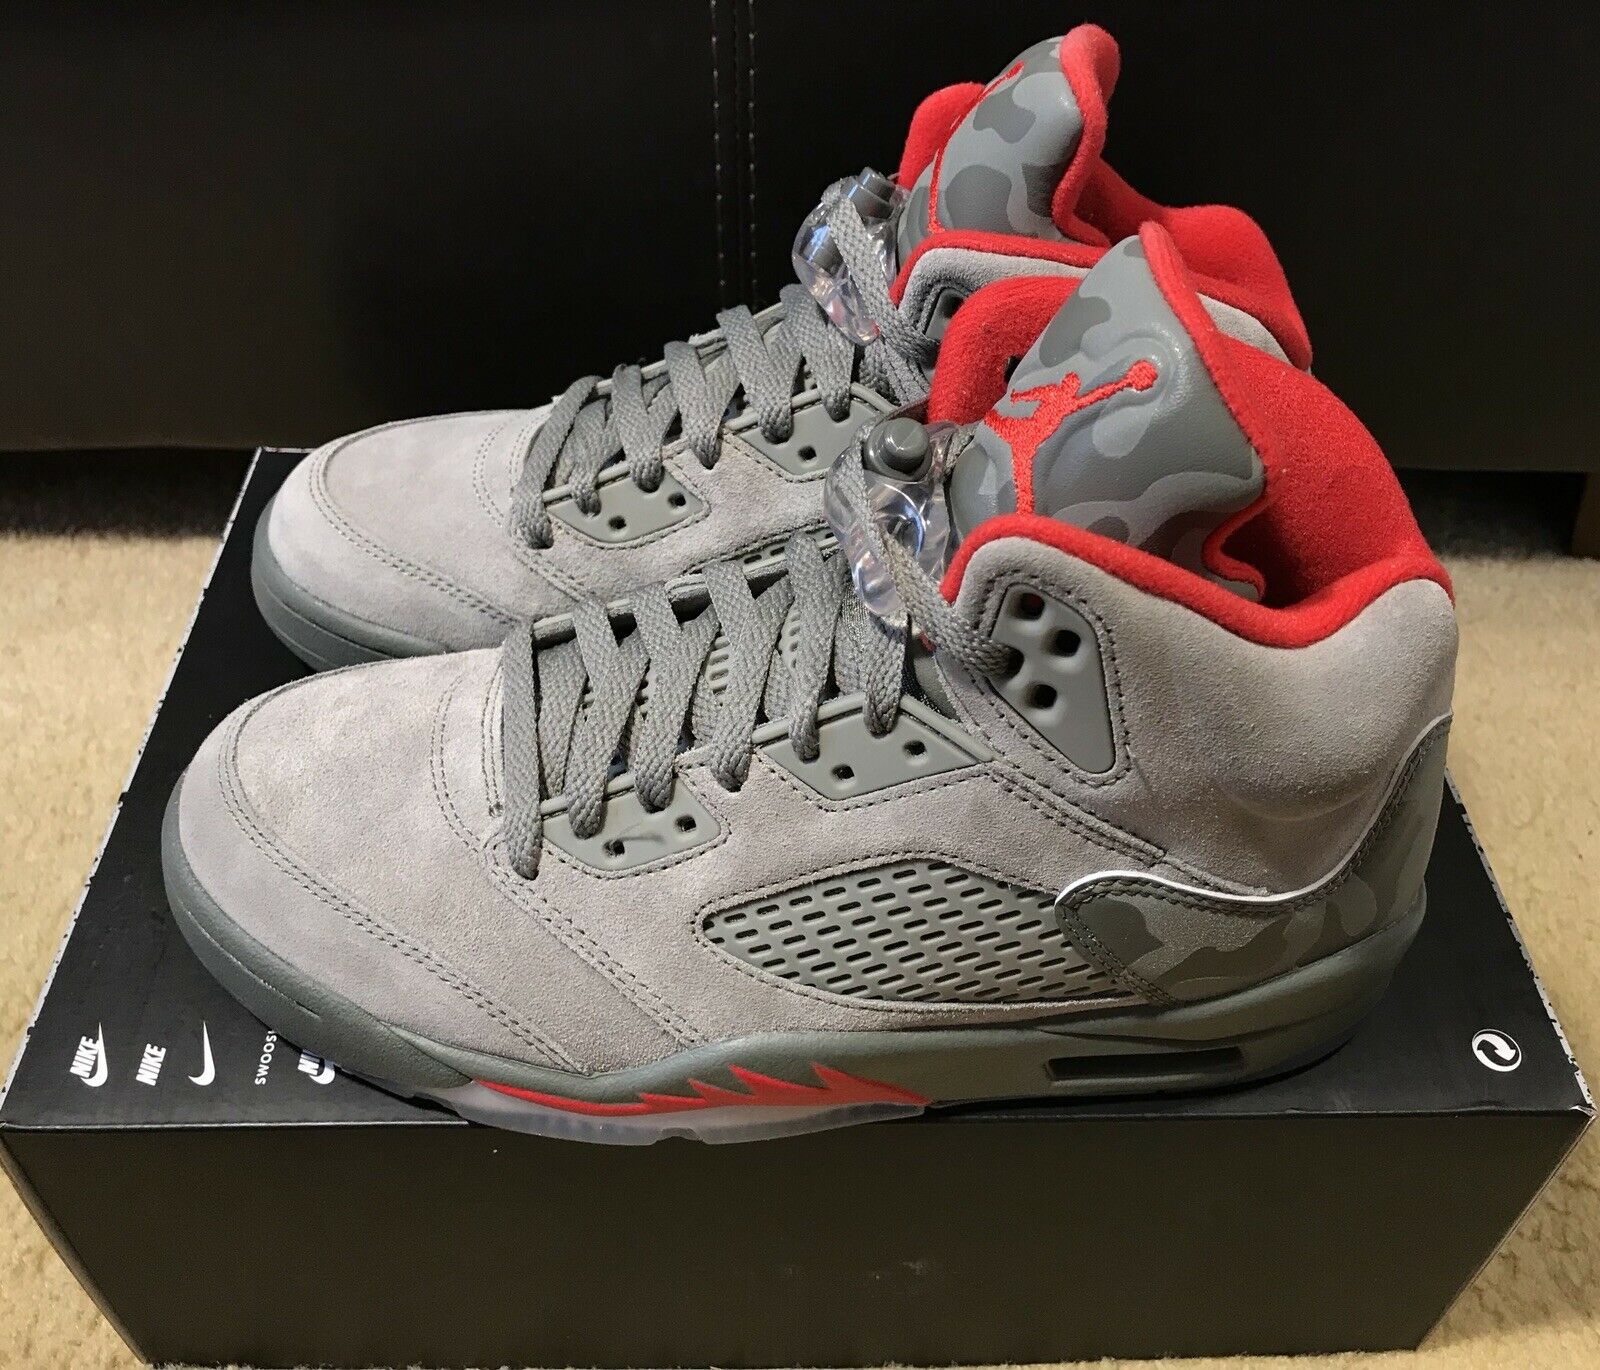 4021ac9e33ebde Nike Air Jordan 5 Retro Reflective Camo Men s sz sz sz 7 Dark Stucco Red  136027 051 17464a